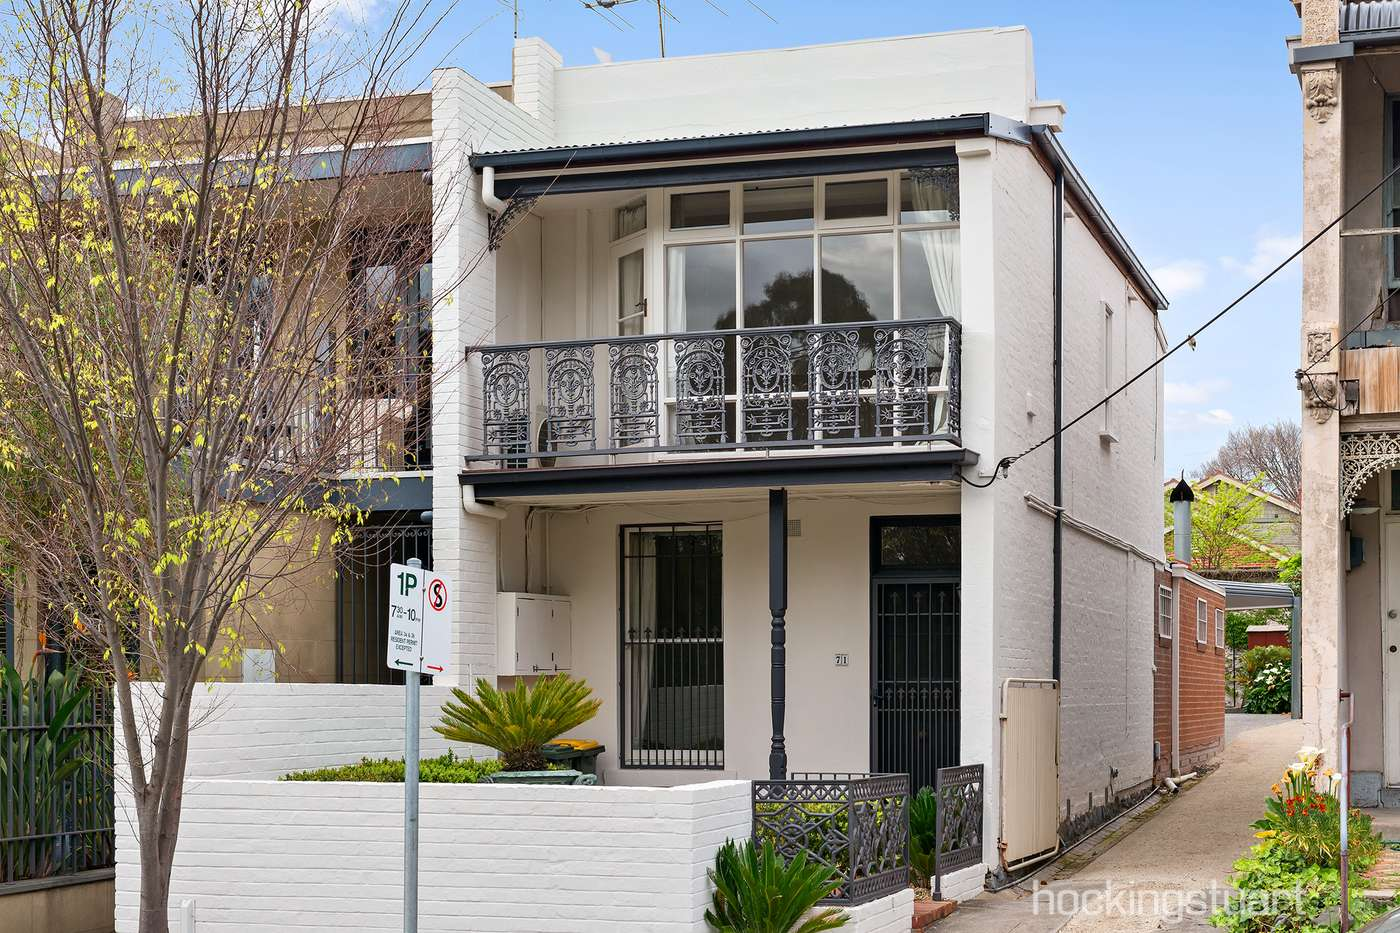 Main view of Homely house listing, 71 Grey Street, East Melbourne, VIC 3002